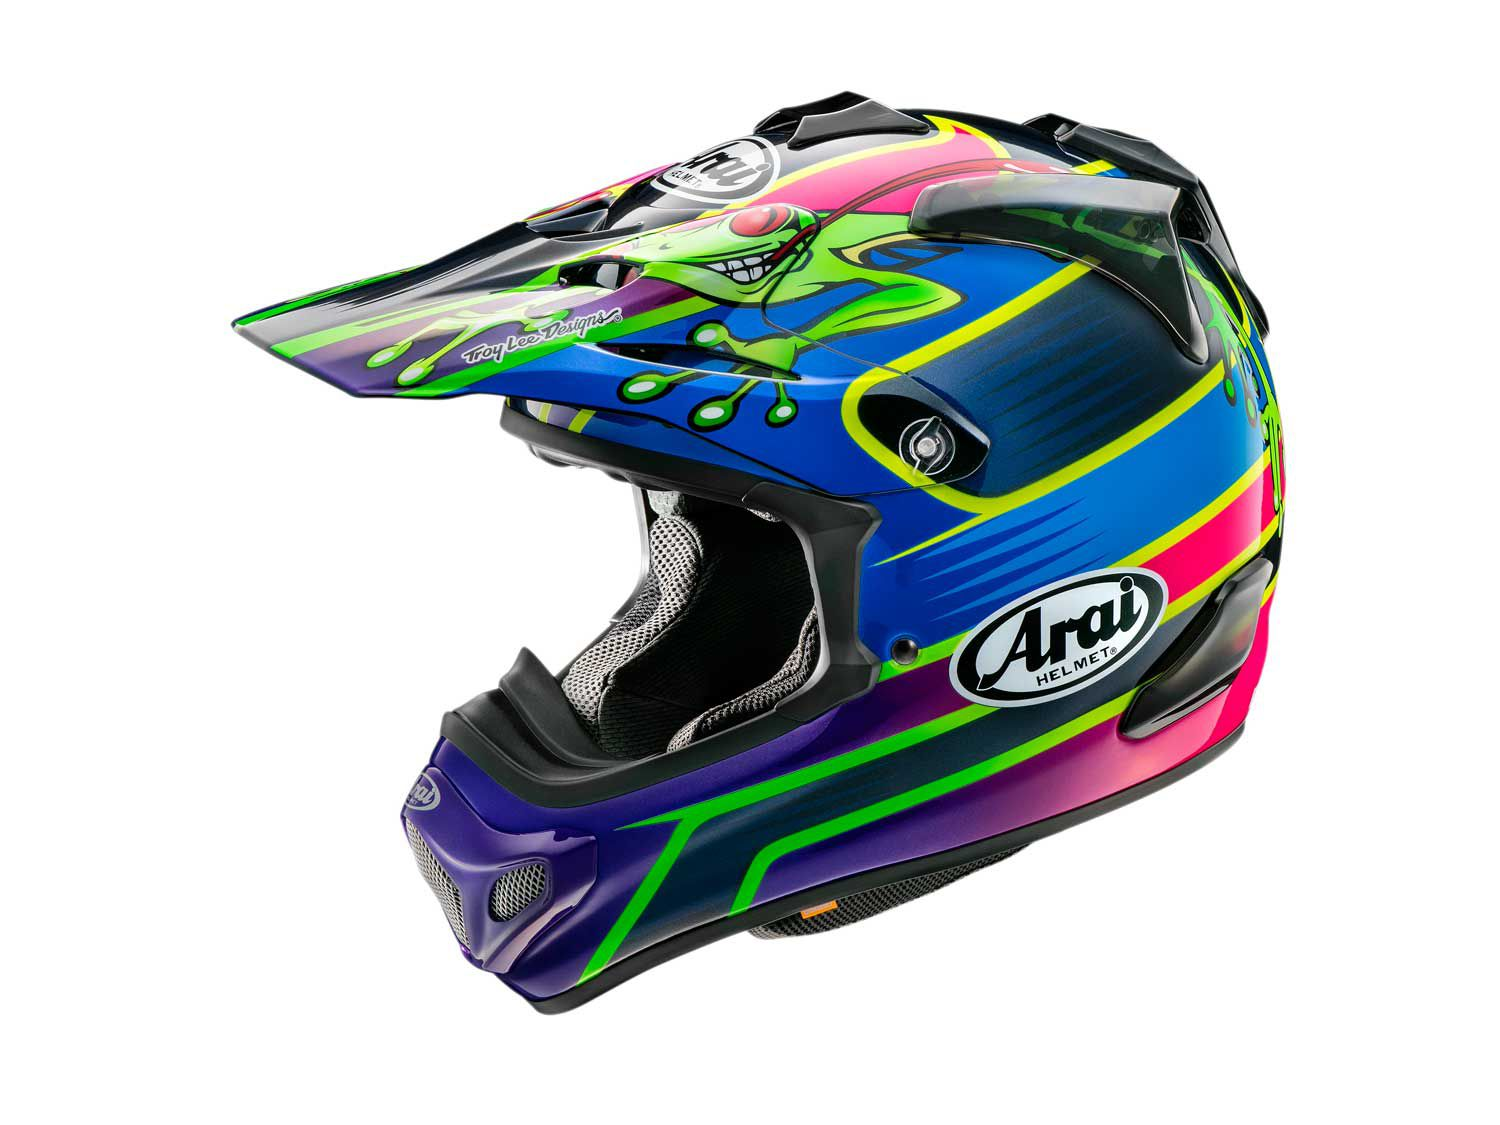 Arai makes a few different pro rider replica versions of its VX-Pro4 helmet, one of which is the Barcia-3 (pictured).